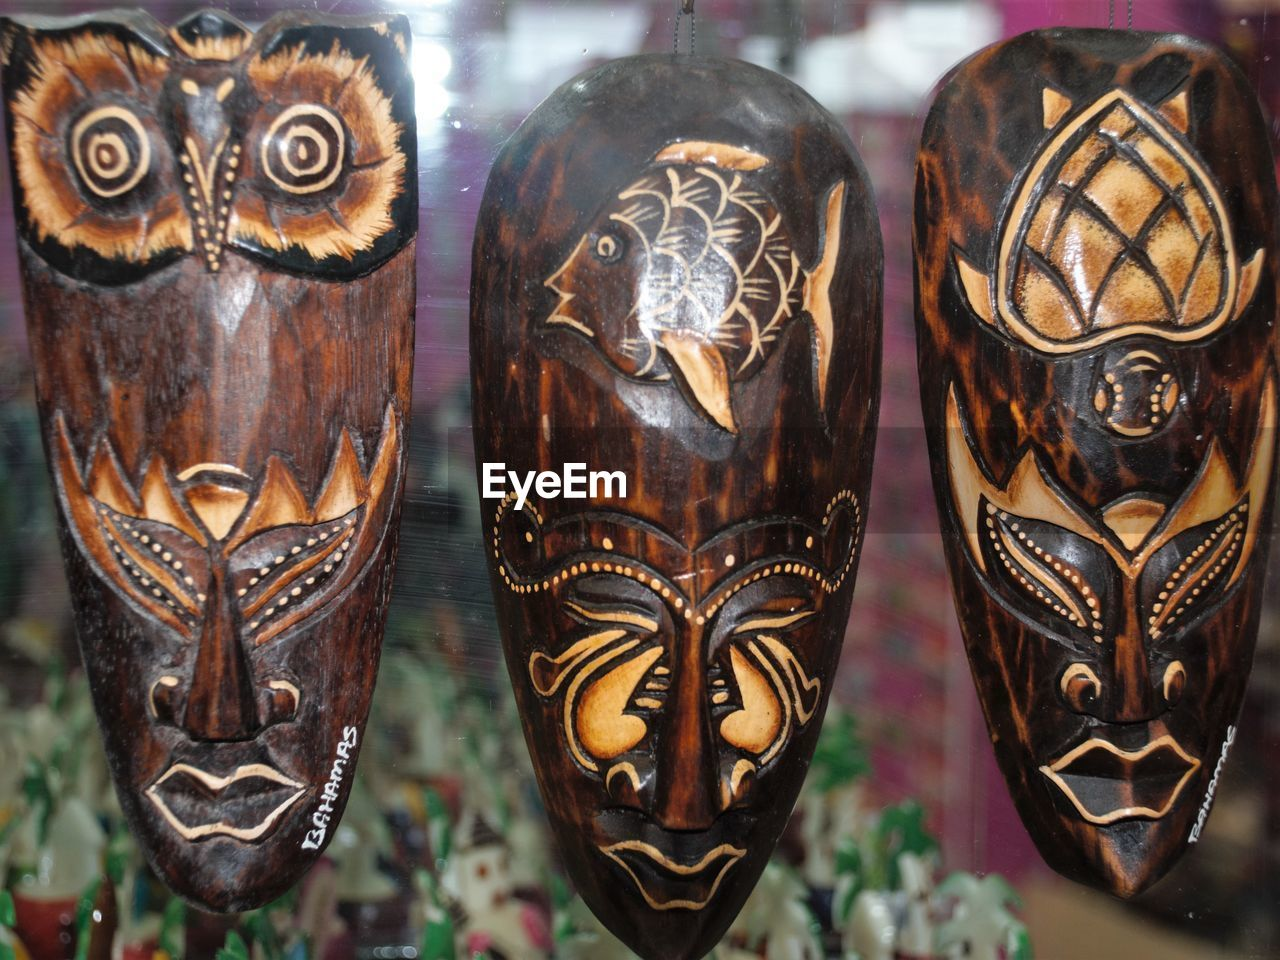 art and craft, close-up, creativity, no people, representation, focus on foreground, indoors, mask - disguise, disguise, mask, human representation, craft, carving - craft product, day, side by side, wood - material, retail, religion, ornate, antique